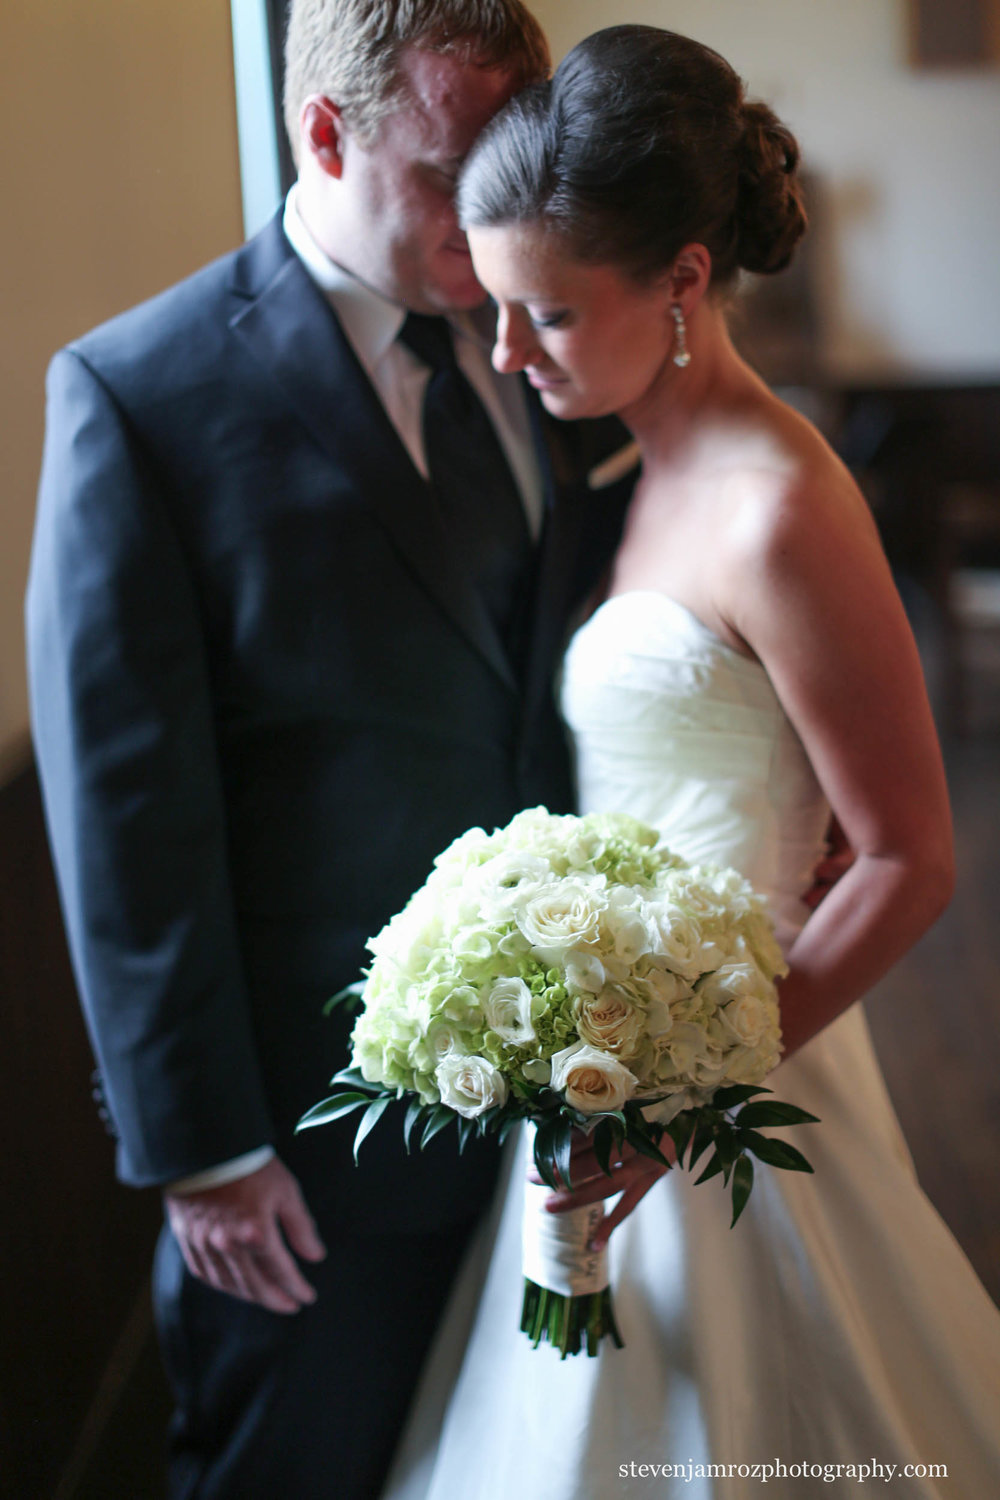 all-saints-church-raleigh-wedding photographer-steven-jamroz-0666.jpg